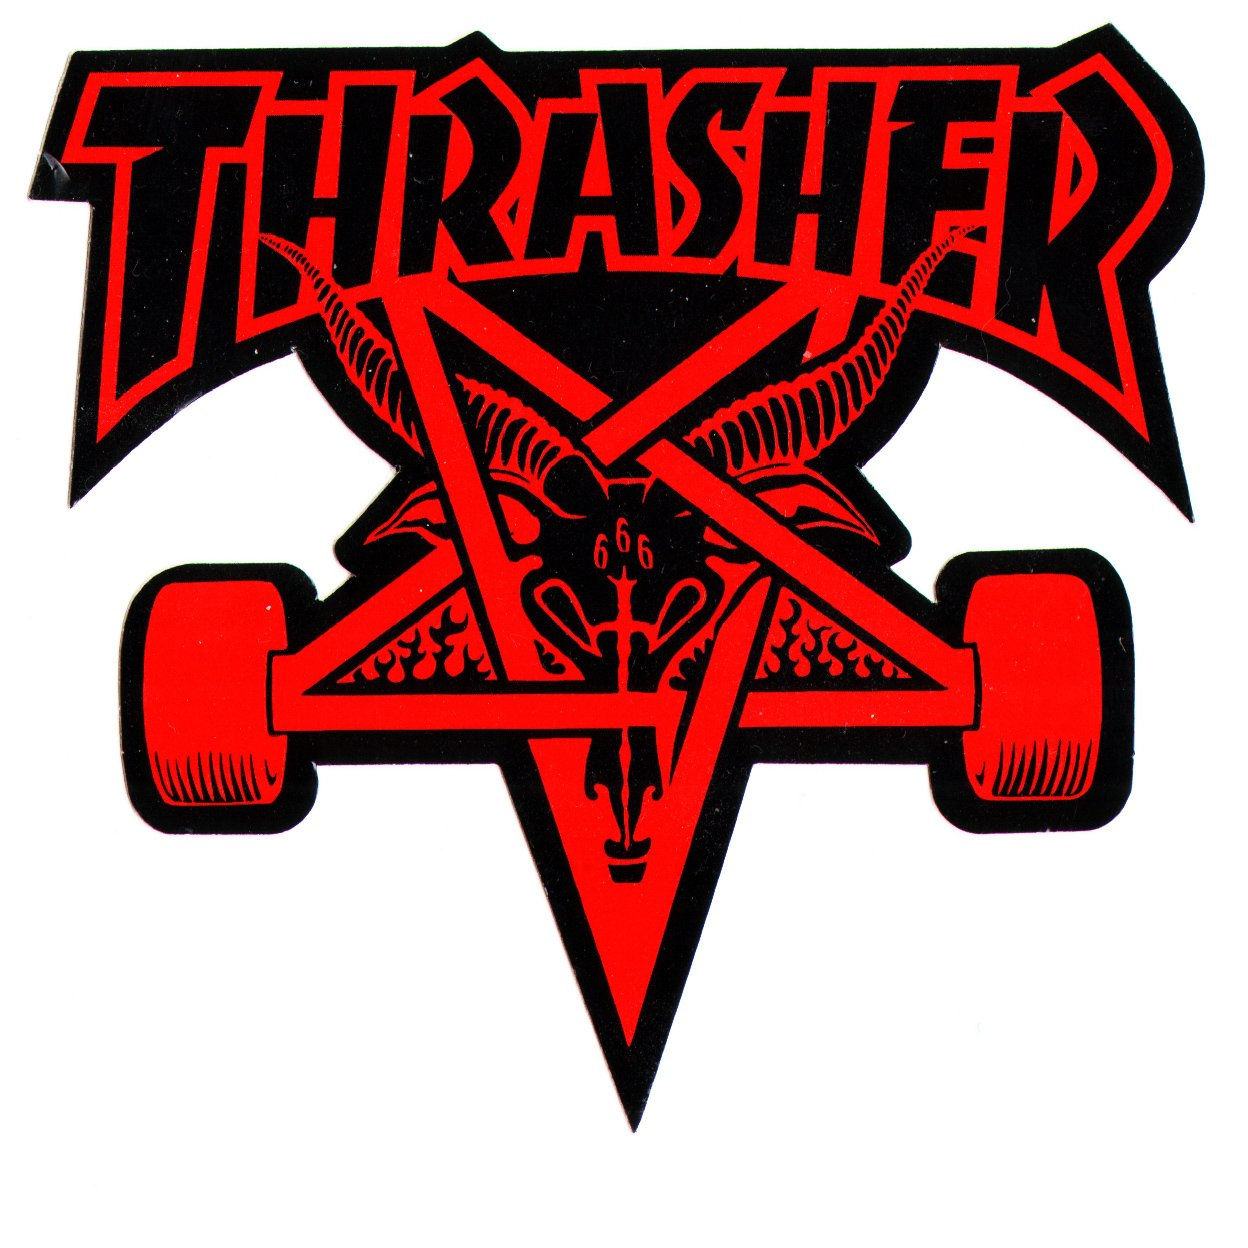 Thrasher magazine skate goat pentagram skateboard sticker 9 x 10cm red black amazon co uk sports outdoors